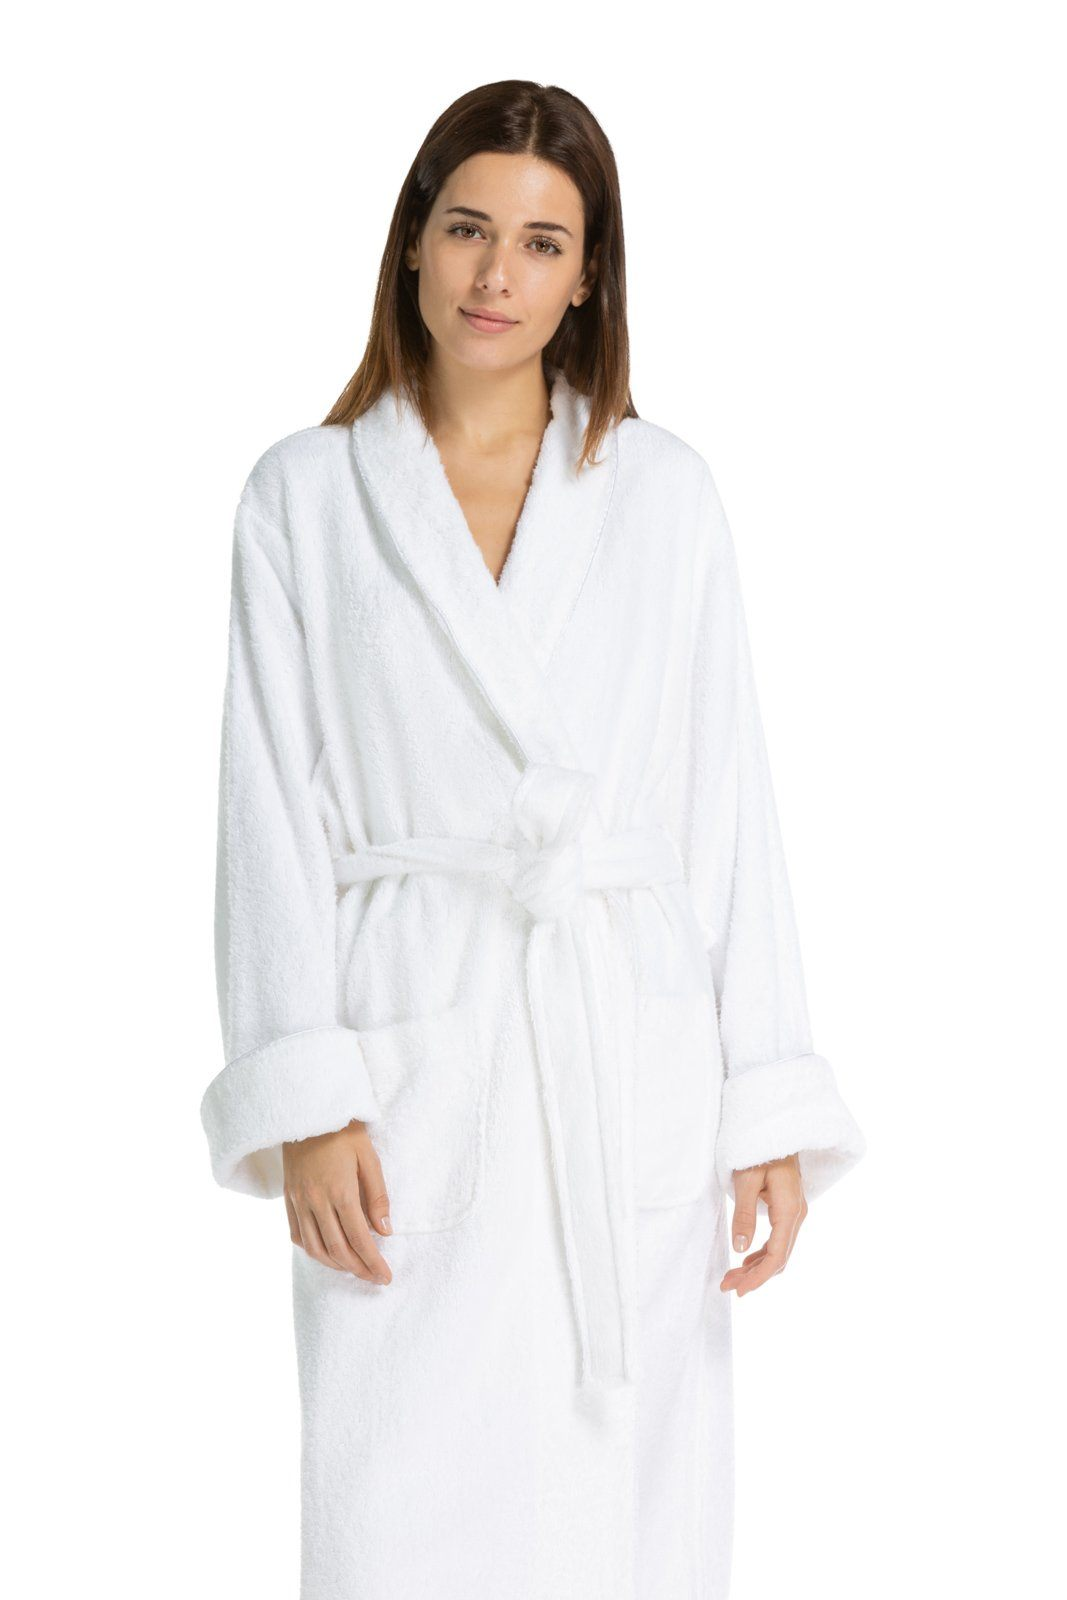 991705f61f Fishers Finery Women s Full Length Resort Terry Cloth Robe